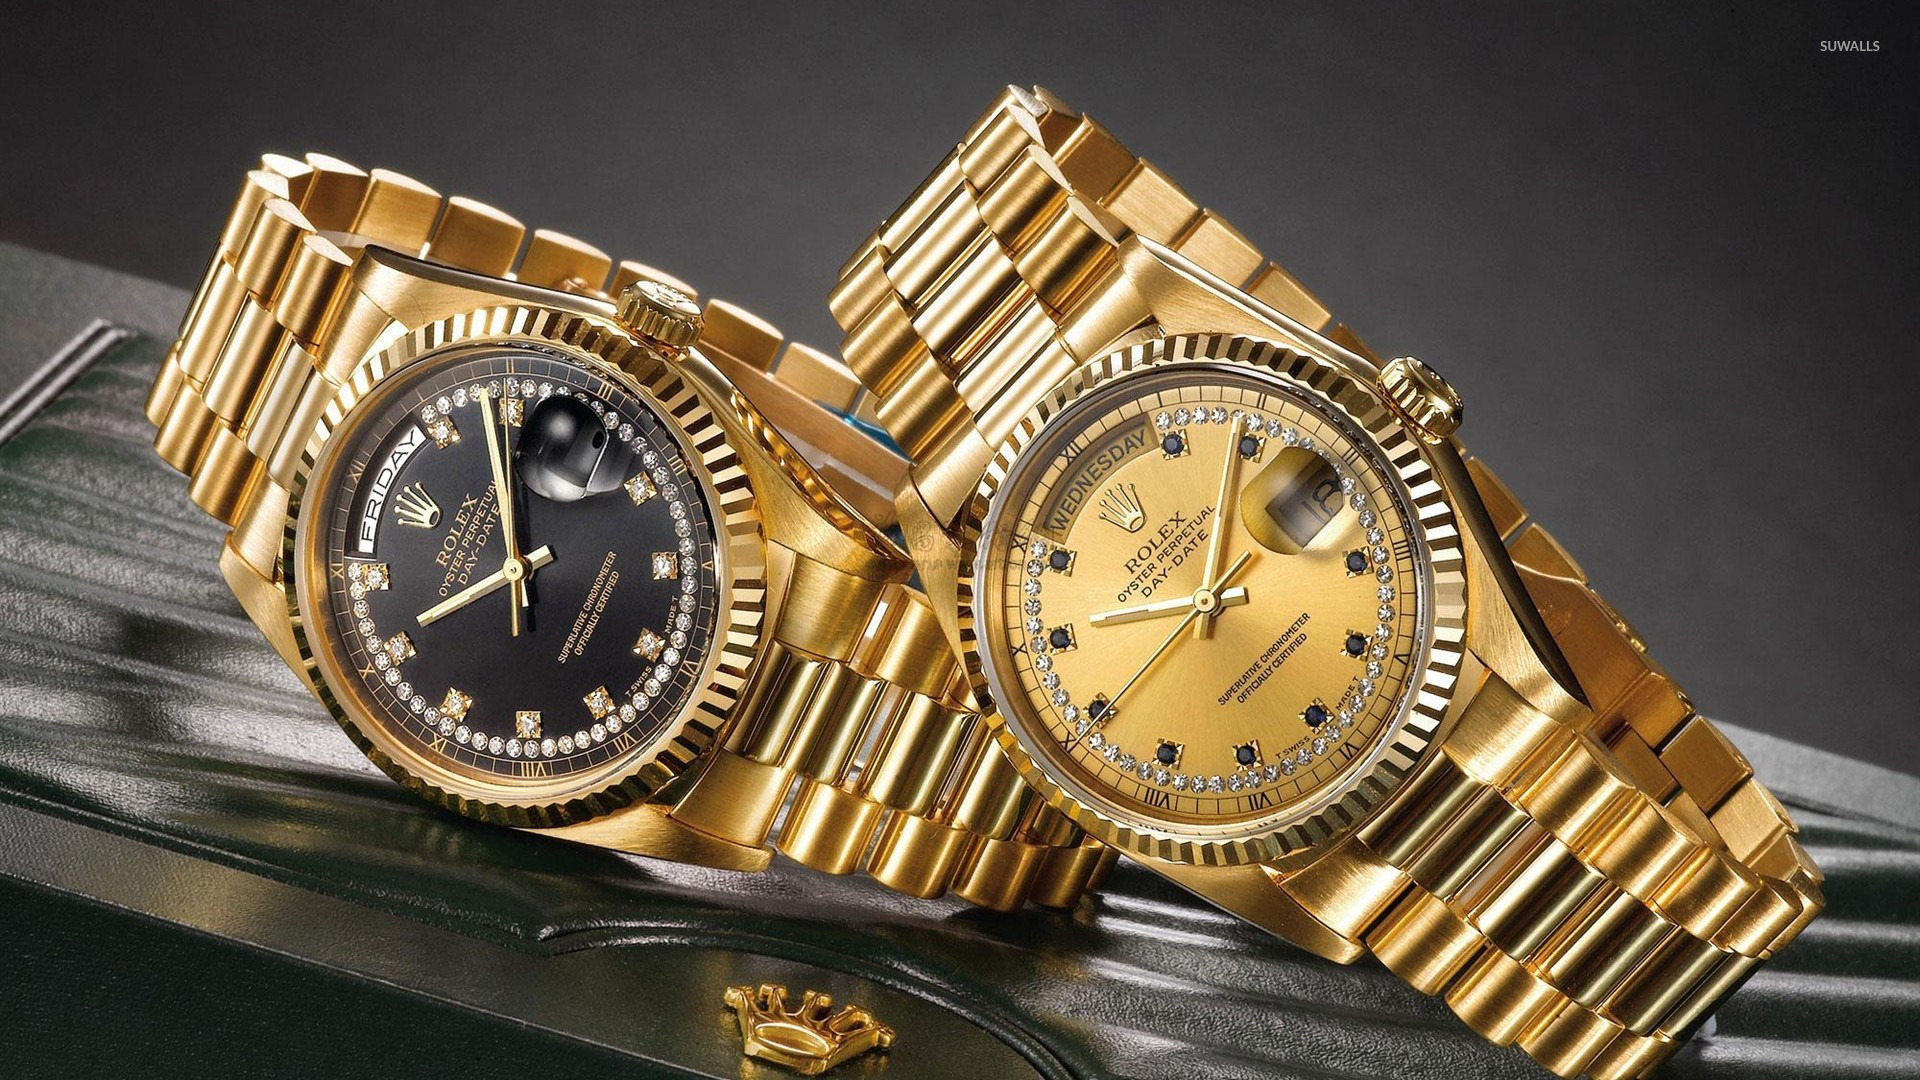 Rolex watches wallpaper   Photography wallpapers    38357 Rolex watches wallpaper